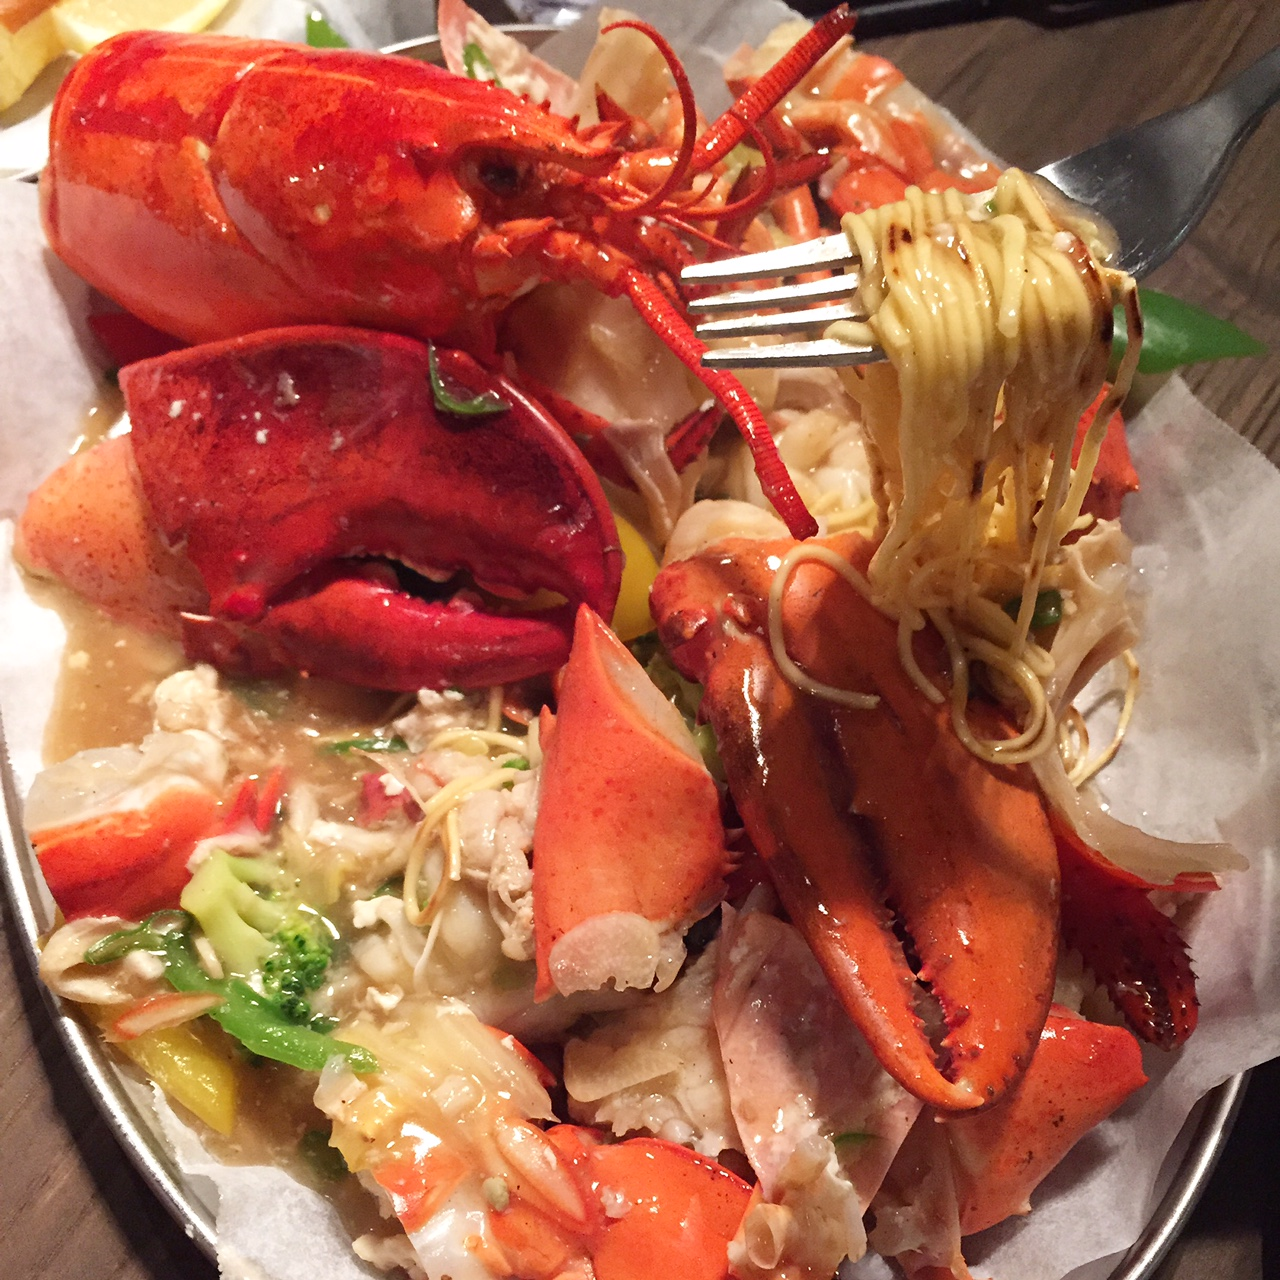 The noodles were so delicious in the sauce and more noodles kept appearing as we made our way through the lobster. There were some pieces of lobster already taken out of the shell amongst the noodles and vegetables - 4 of us shared this (along with 3 sandwiches and a soup) -  we definitely all had our fill of lobster!